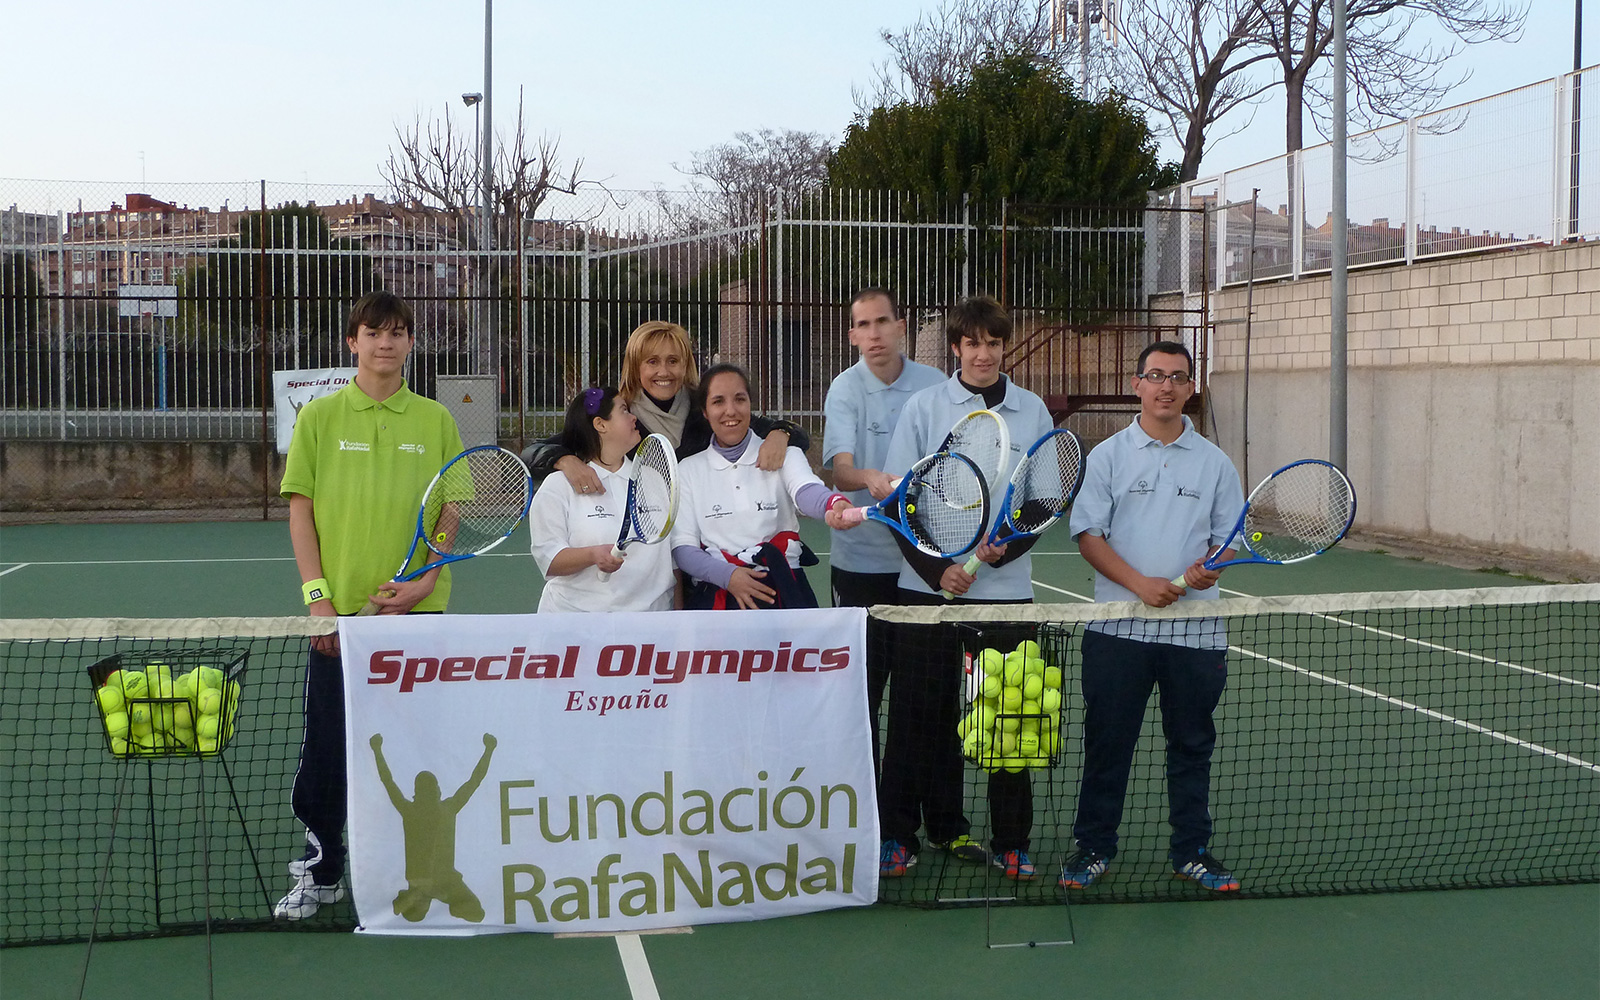 Beneficiaries More than Tennis in Zaragoza